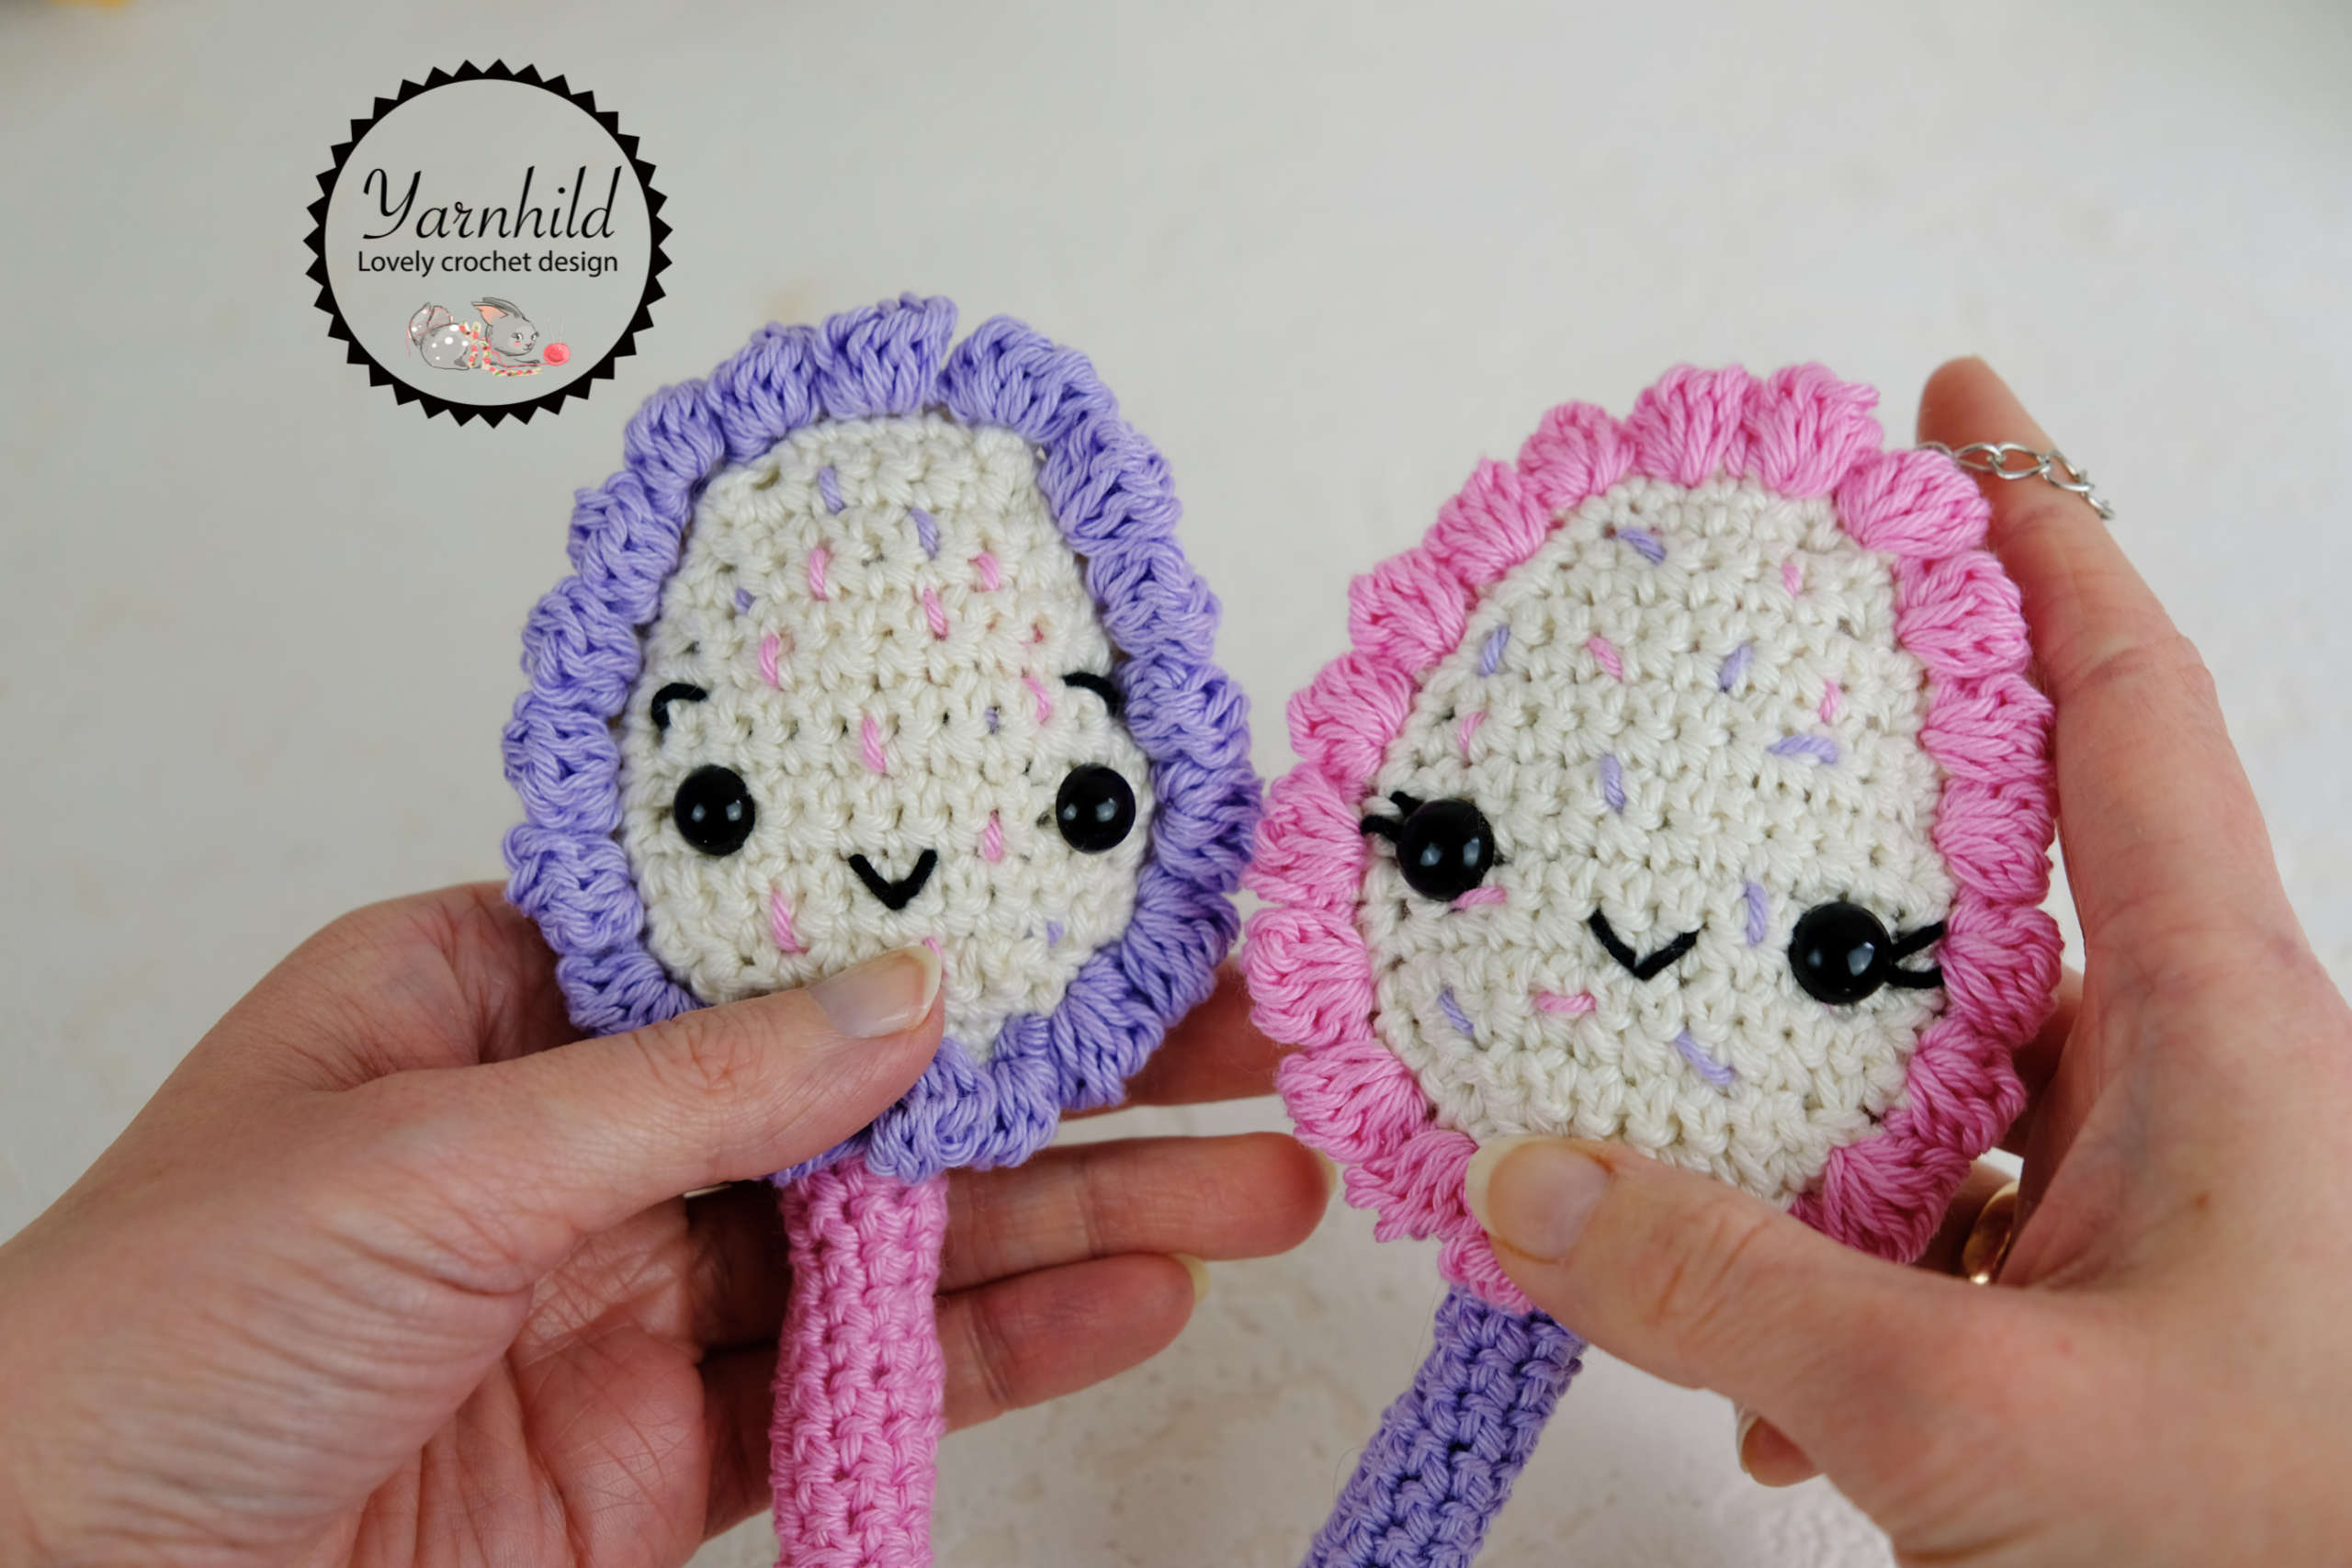 Cute Amigurumi Keychains Free Crochet Patterns | 1707x2560